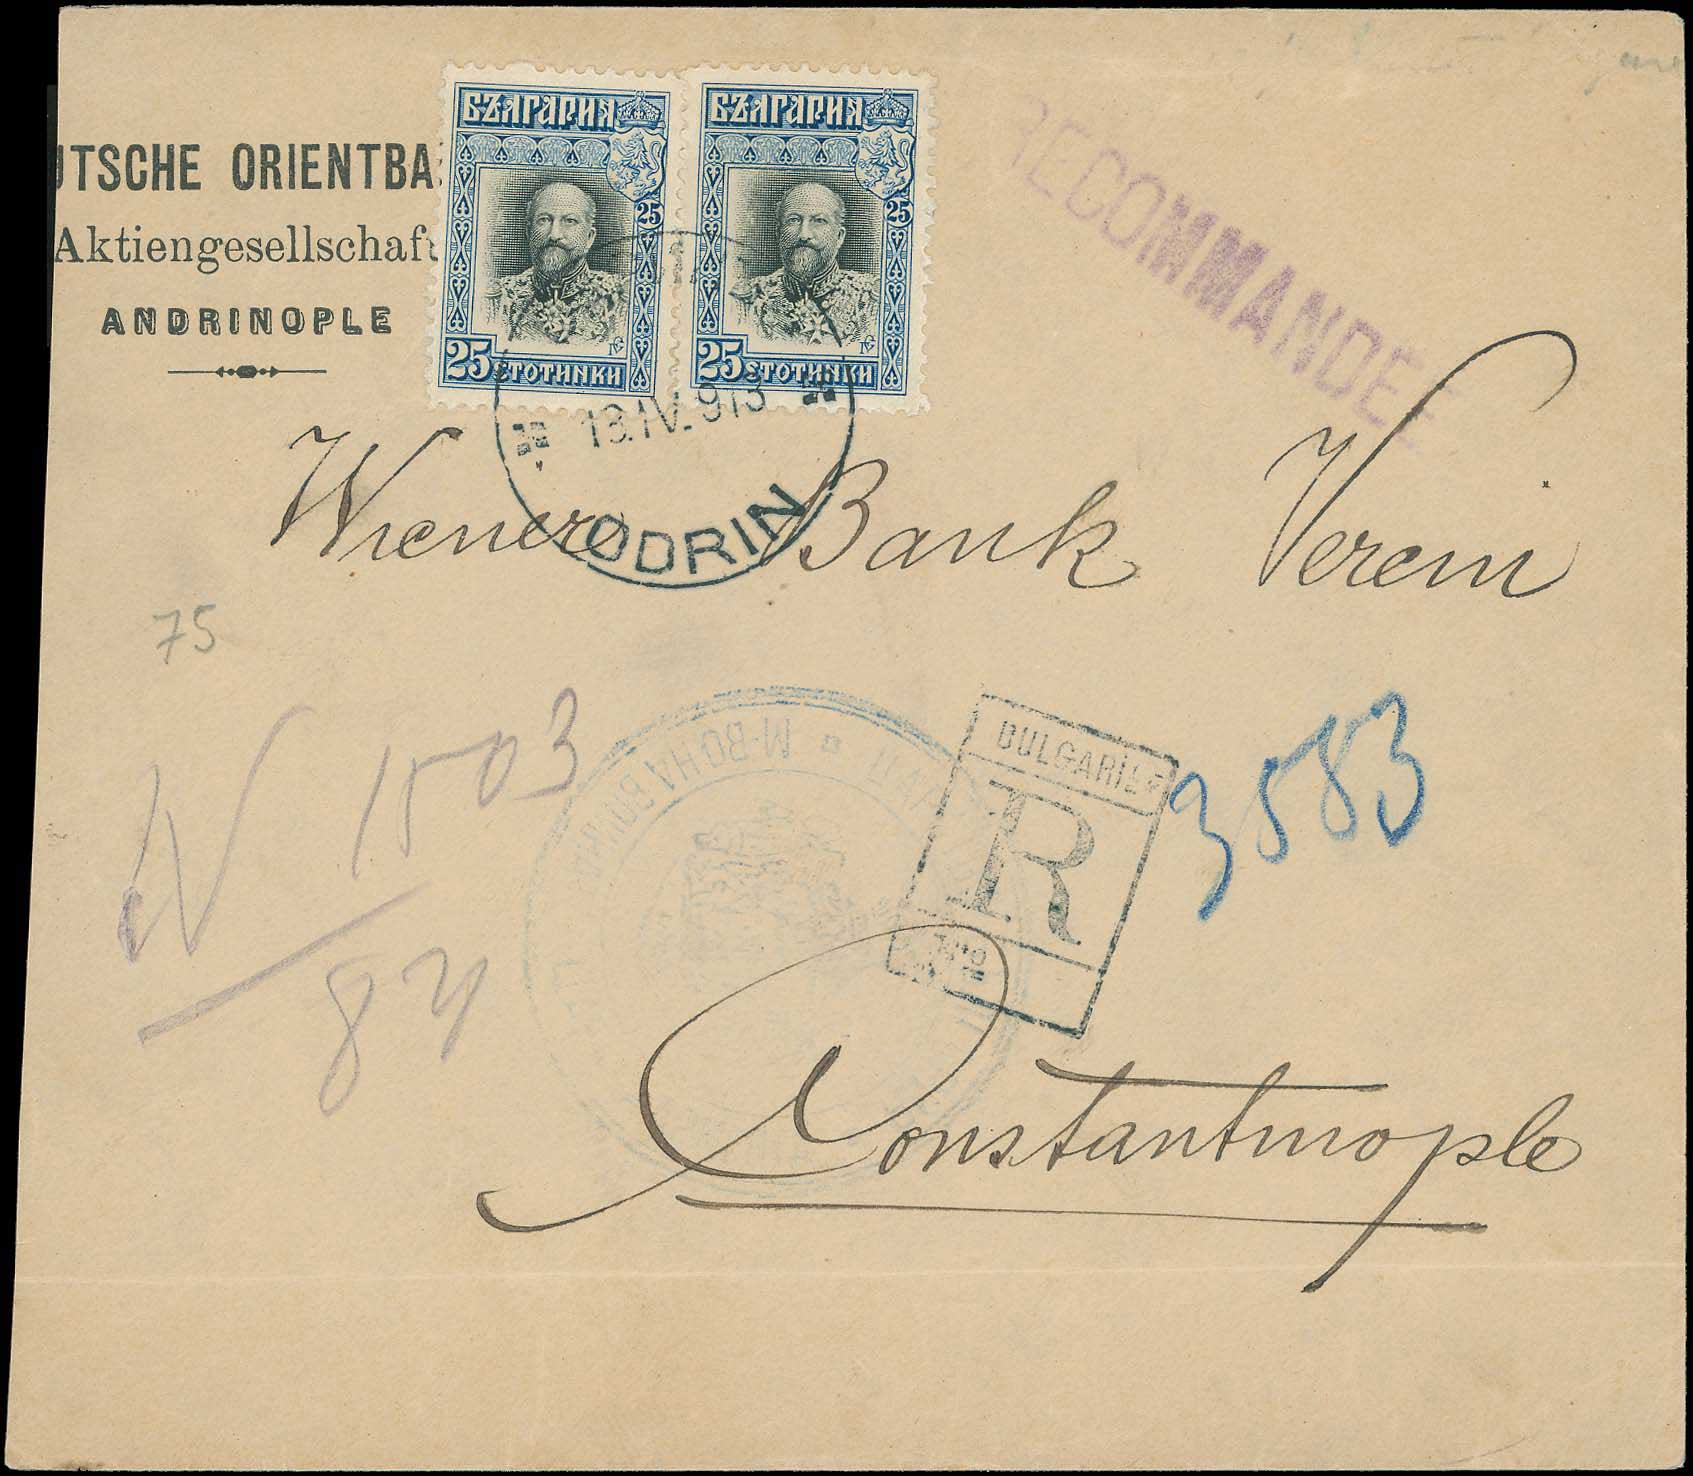 Lot 735 - THRACE (EAST-WEST-NORTH) & PORT-LAGOS BULGARIAN OCCUPATION (EAST THRACE) -  A. Karamitsos Public & Live Internet Auction 672